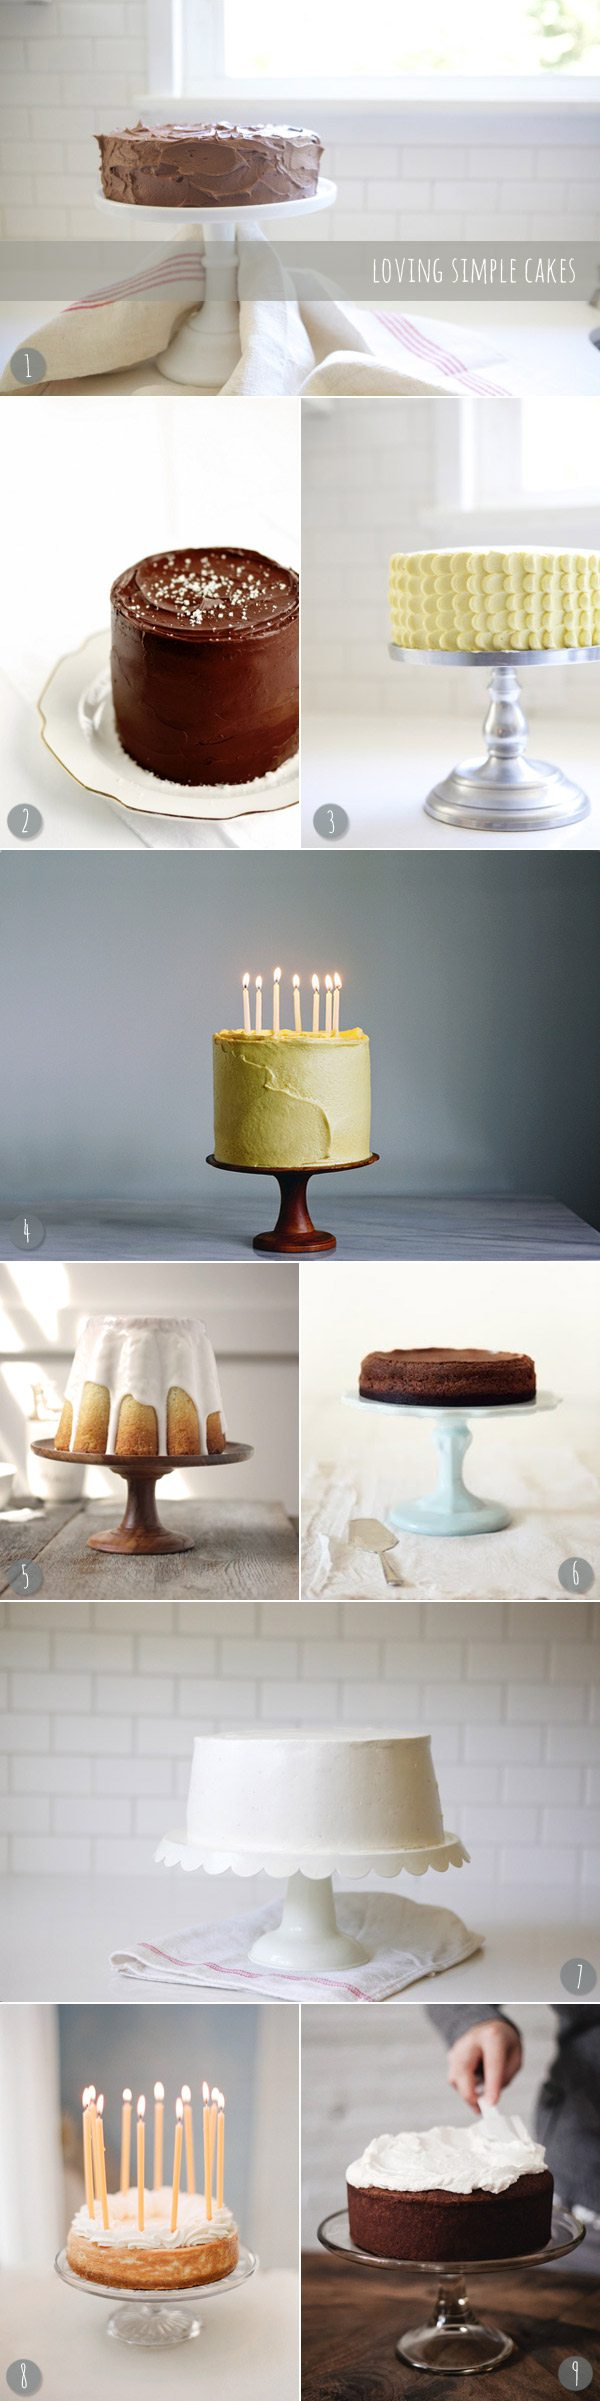 Loving simple cakes | The Sweetest Occasion